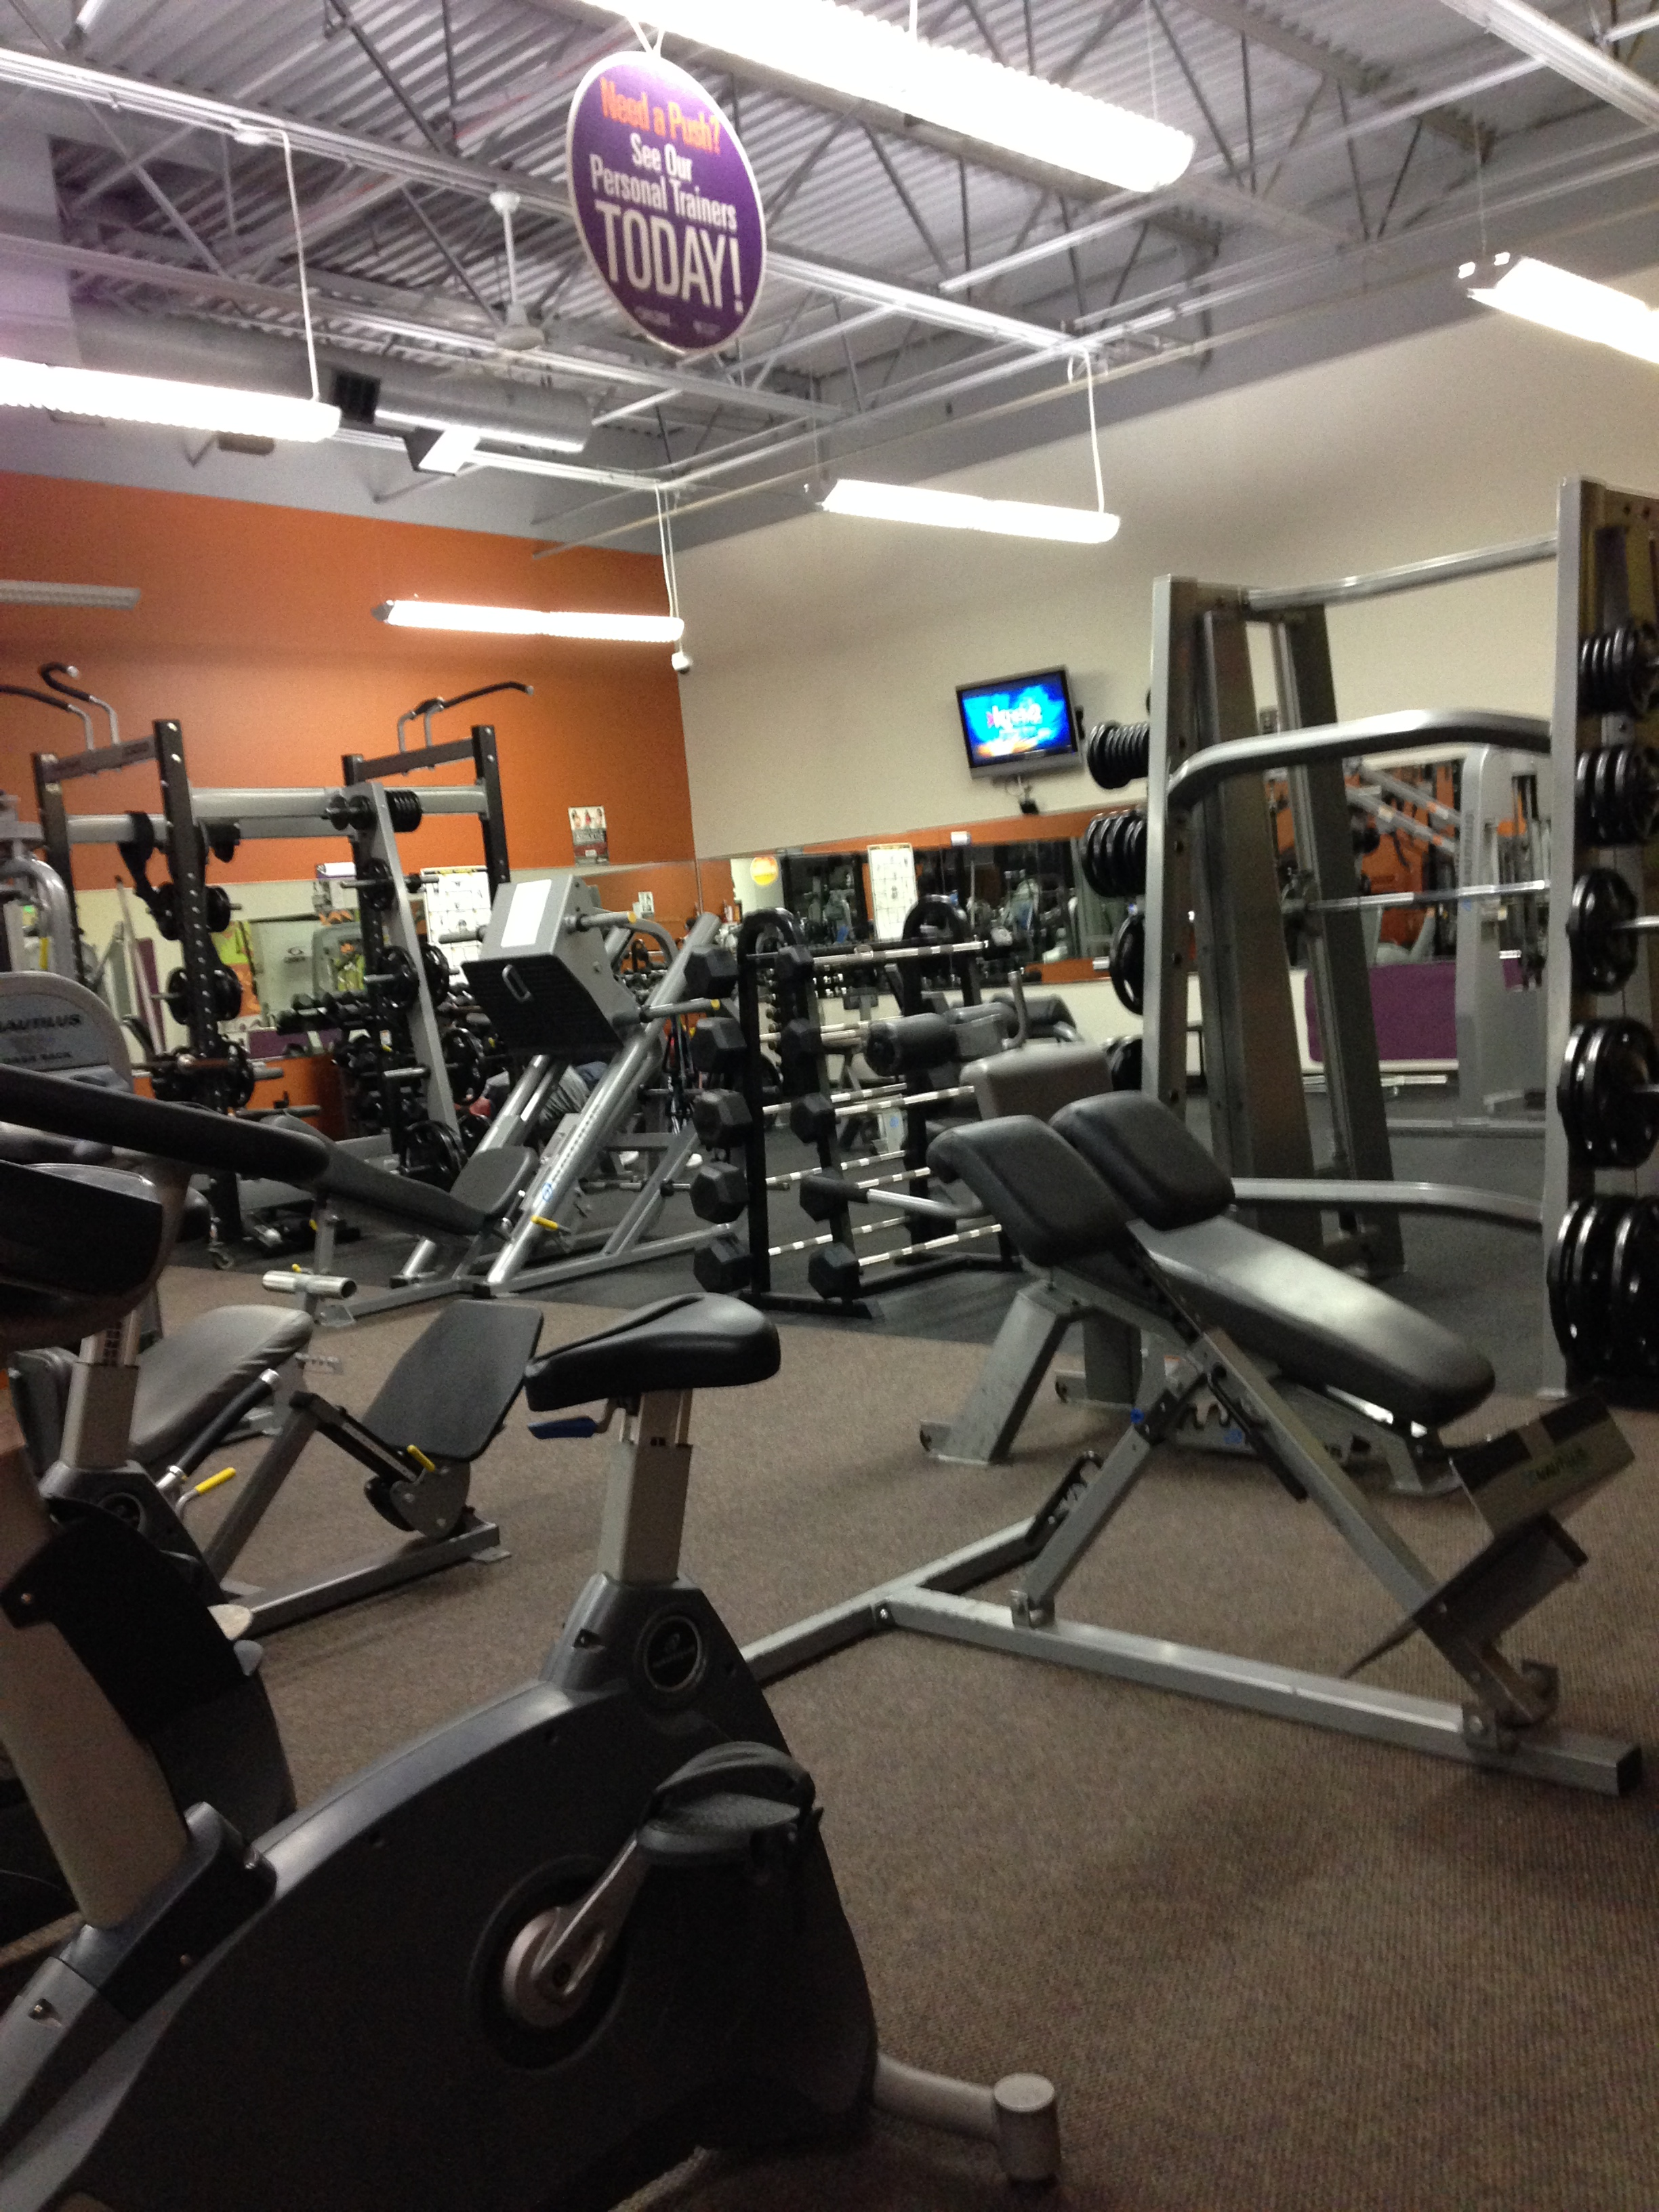 I worked out early this morning at Anytime Fitness in north Spokane.